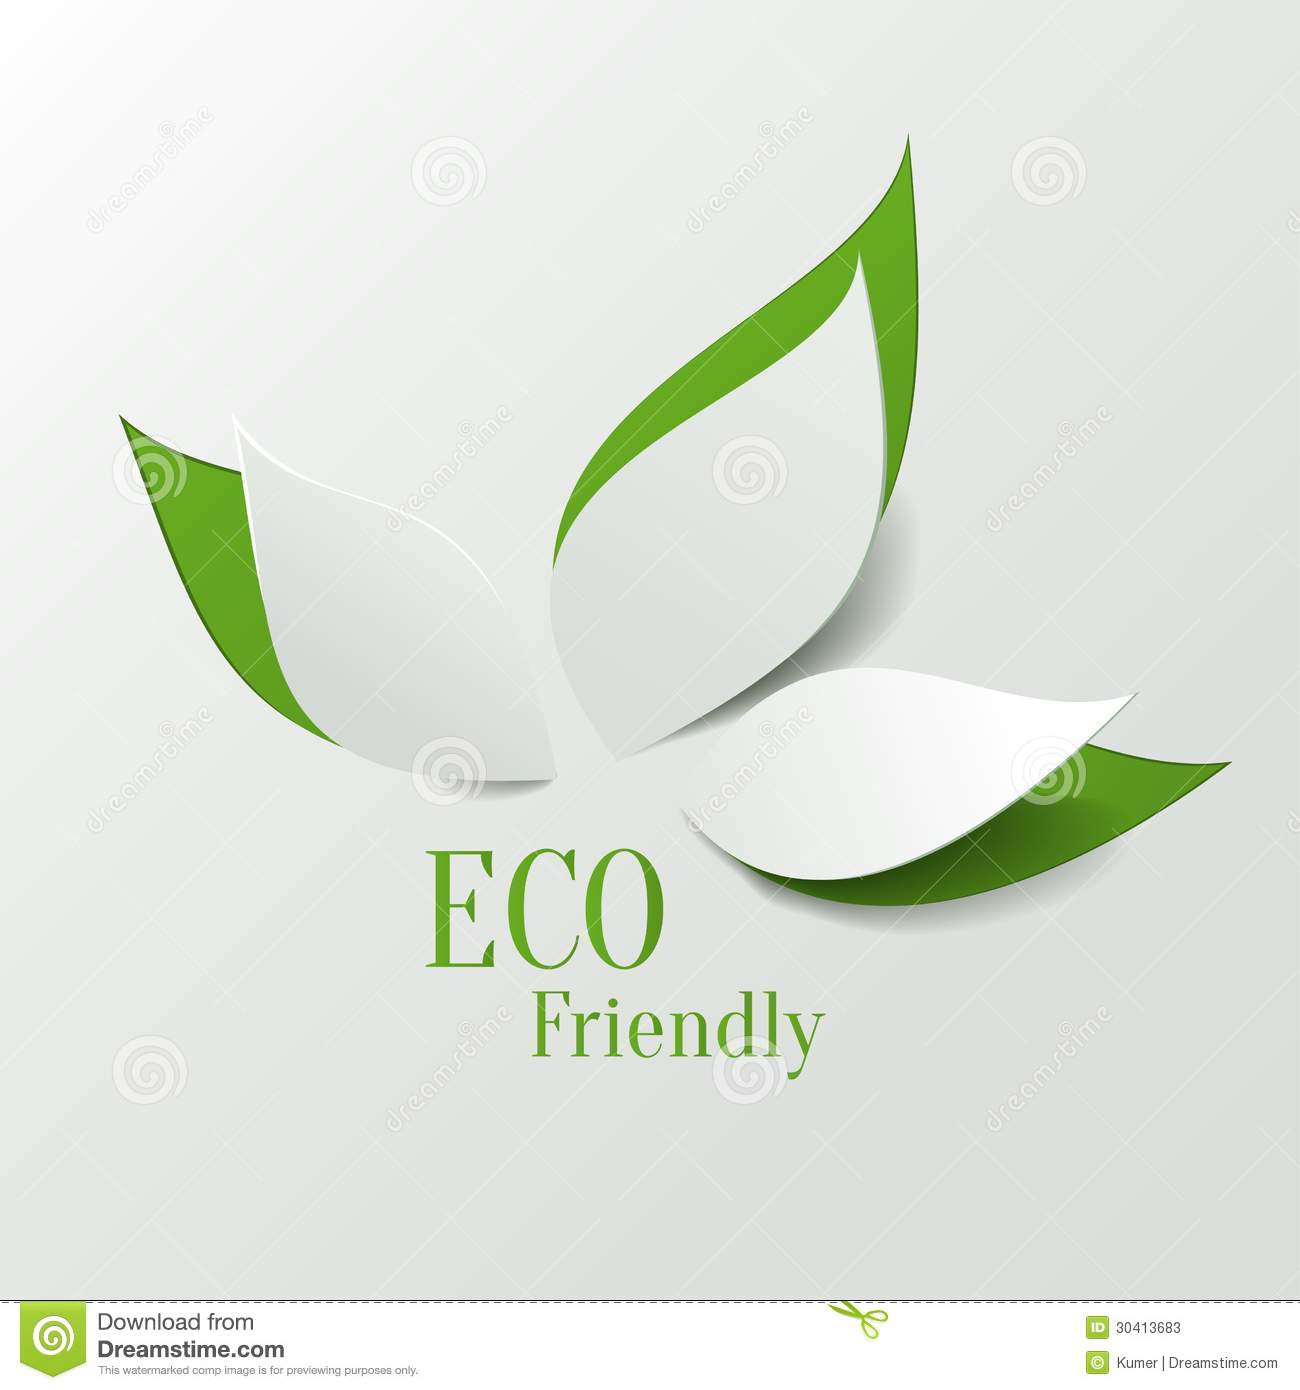 essay on eco-friendliness Tú estás aquí: inicio / blog / sin categoría / essay on eco friendliness of tiny, best creative writing software mac, help to make a thesis statement.